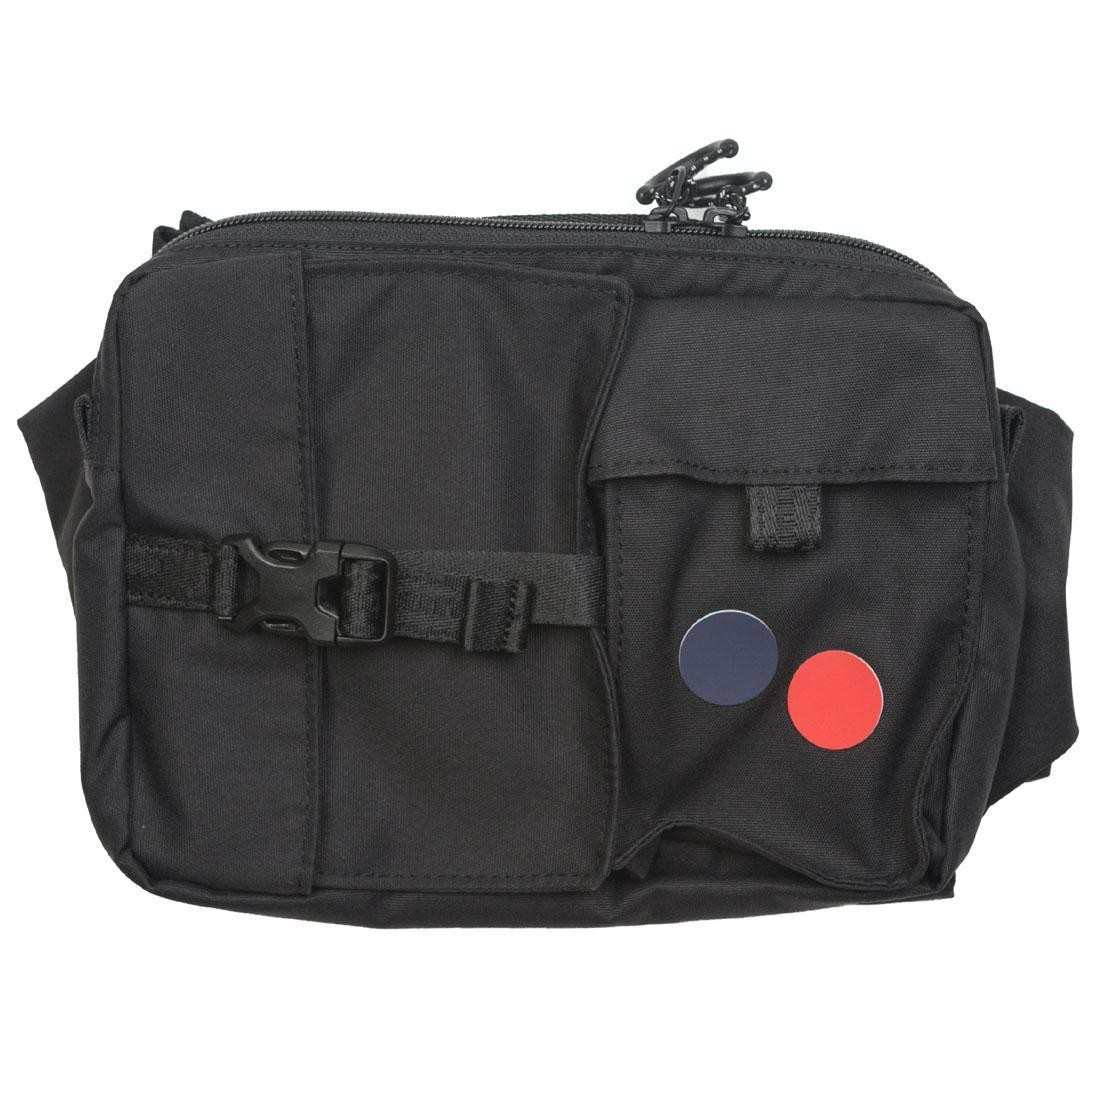 PinqPonq Tetrik Hip Bag (black)